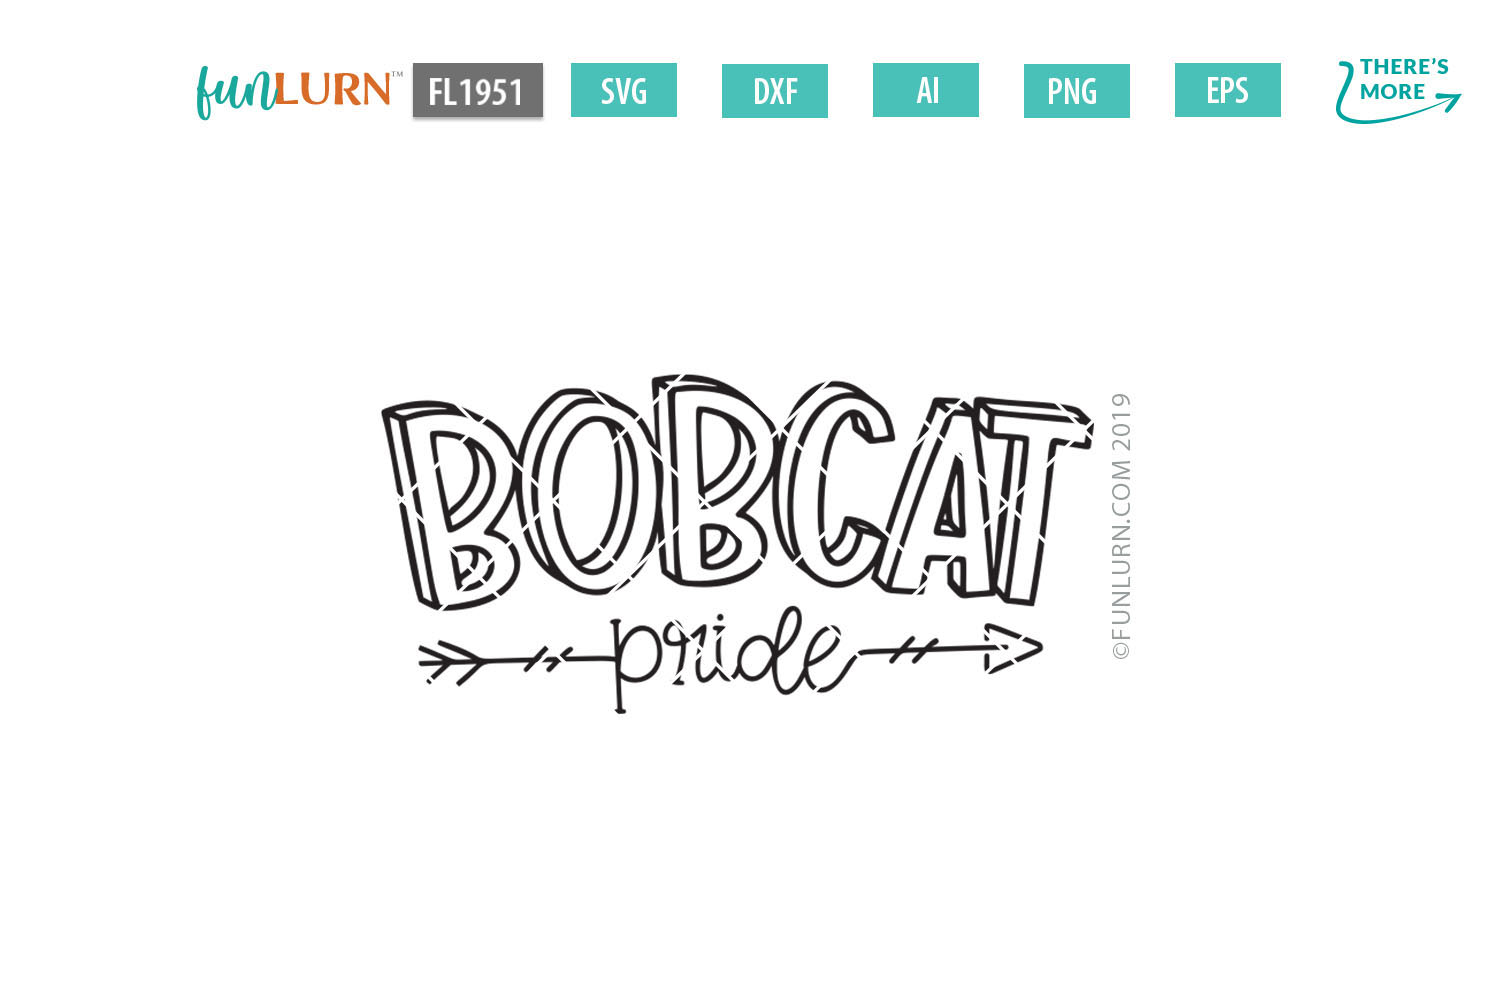 Bobcat Pride Team SVG Cut File example image 2